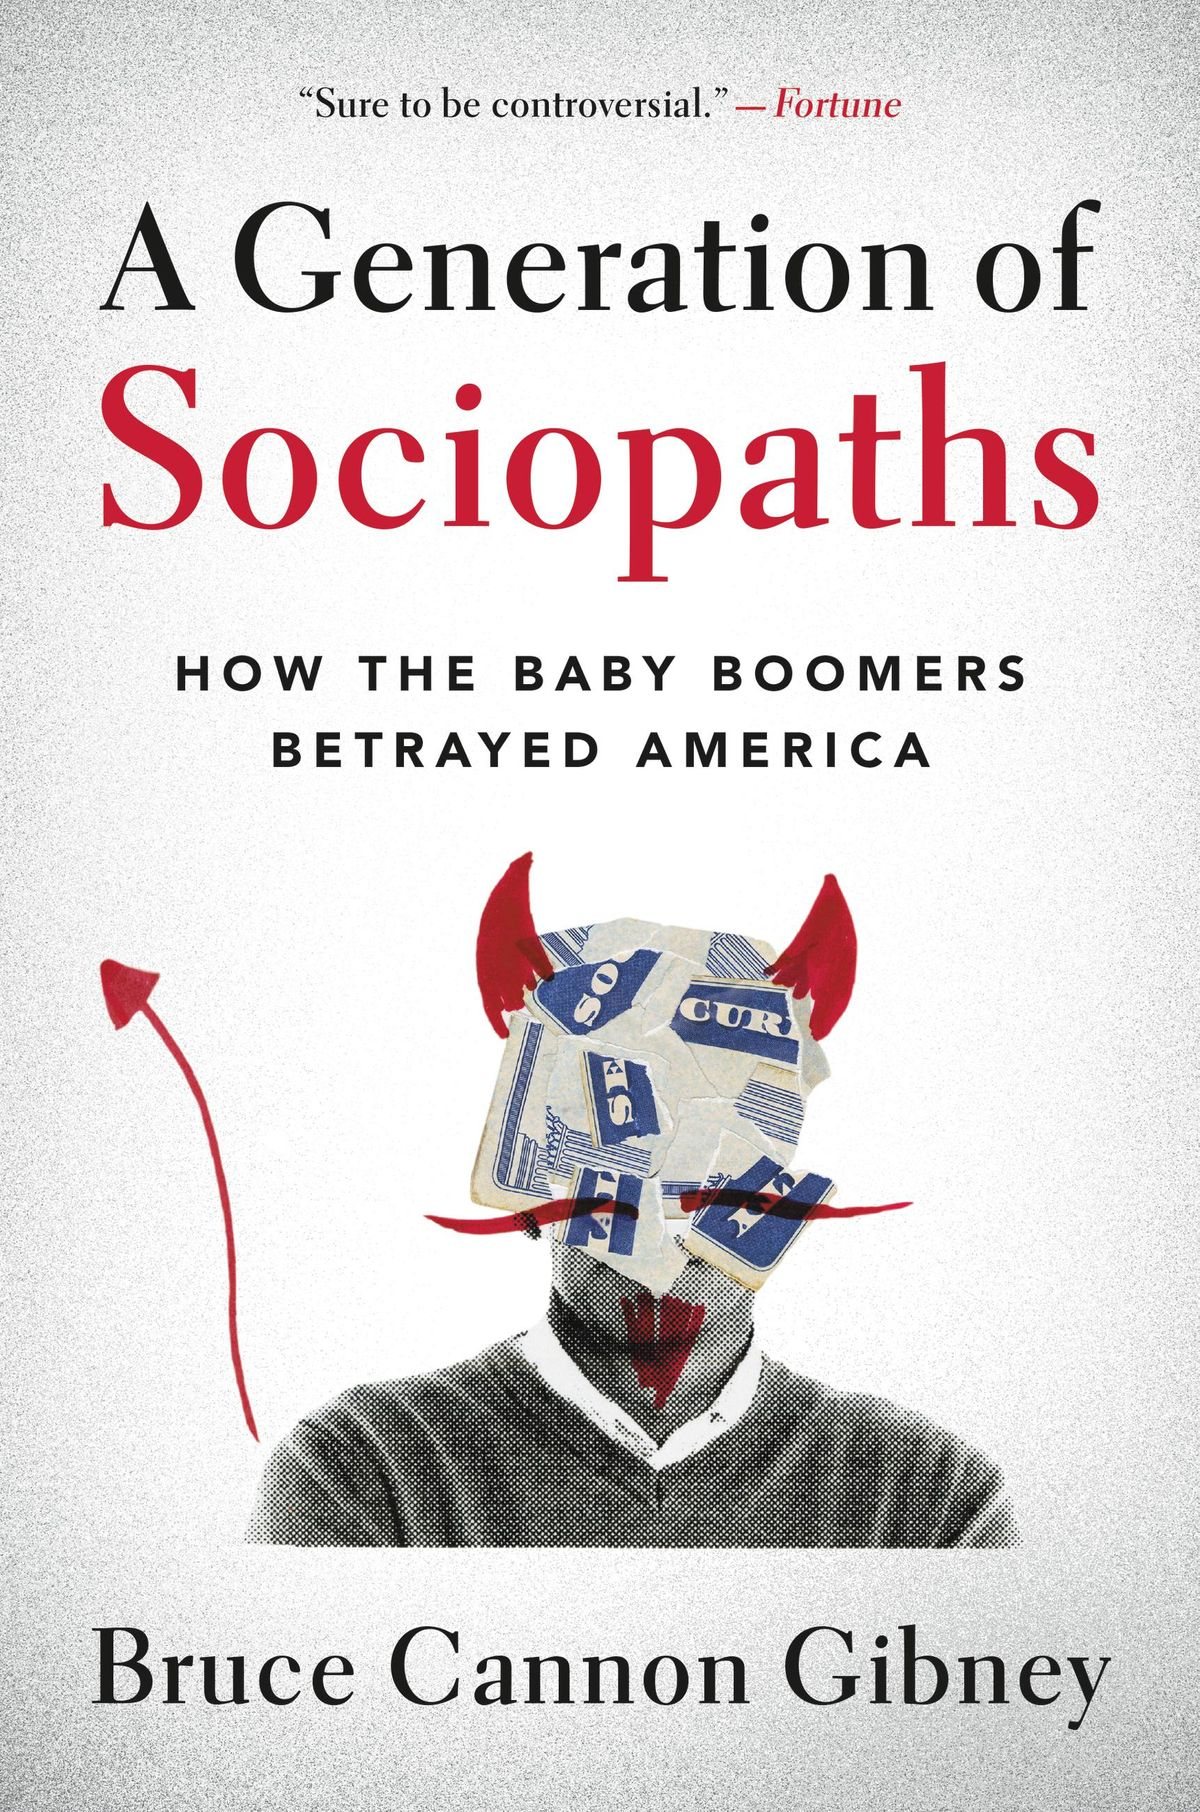 a-generation-of-sociopaths